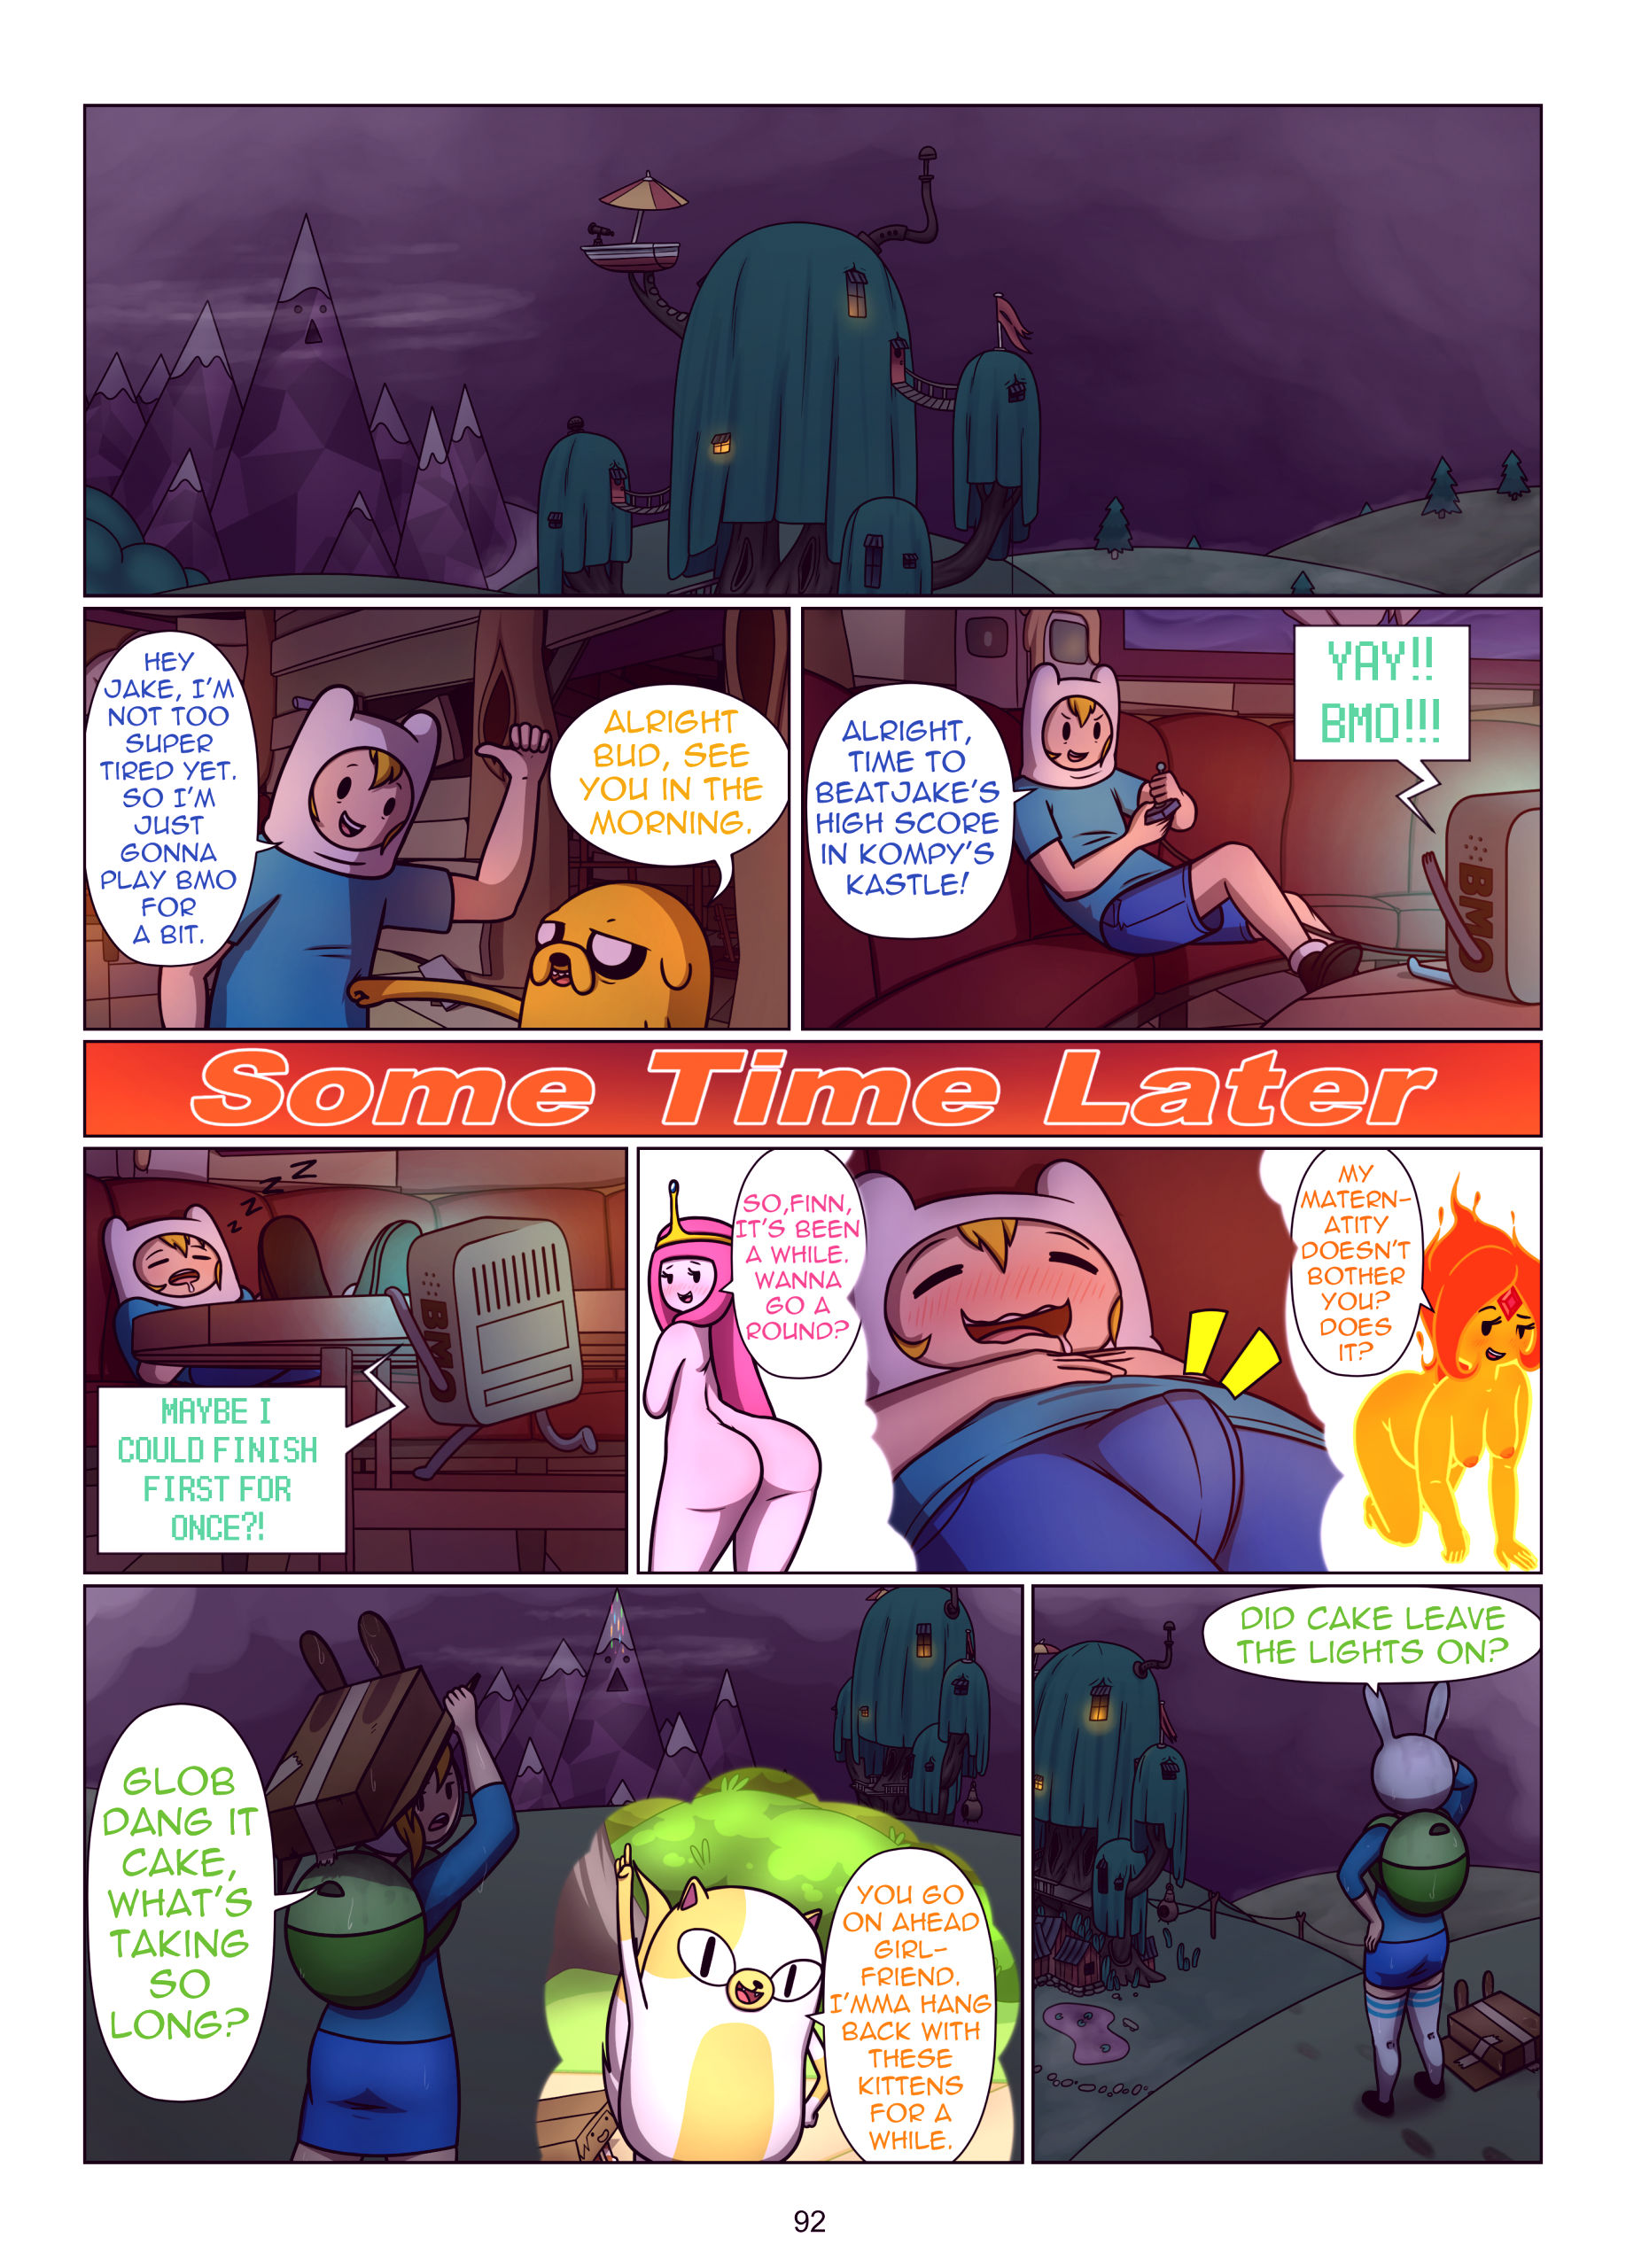 Misadventure time the collection porn comic picture 93